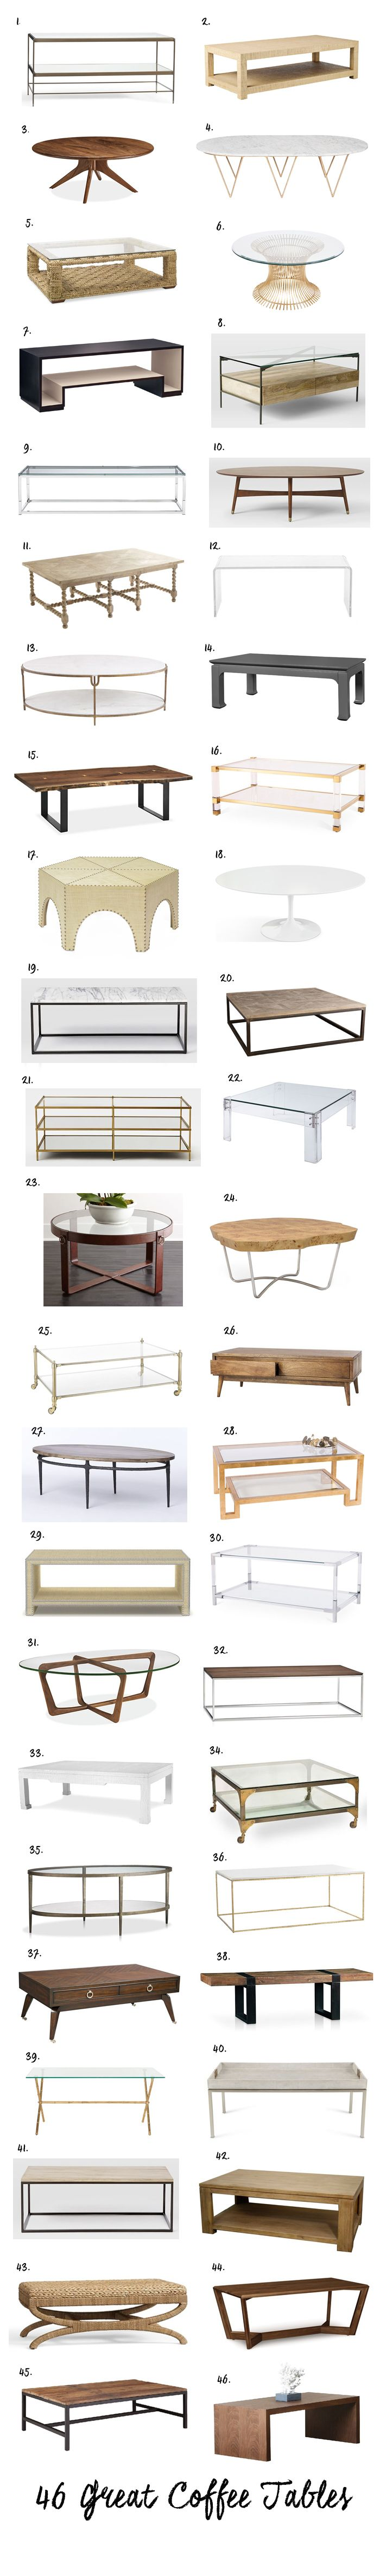 Clairemont Coffee Table 1000 Images About For The Home On Pinterest Nesting Tables